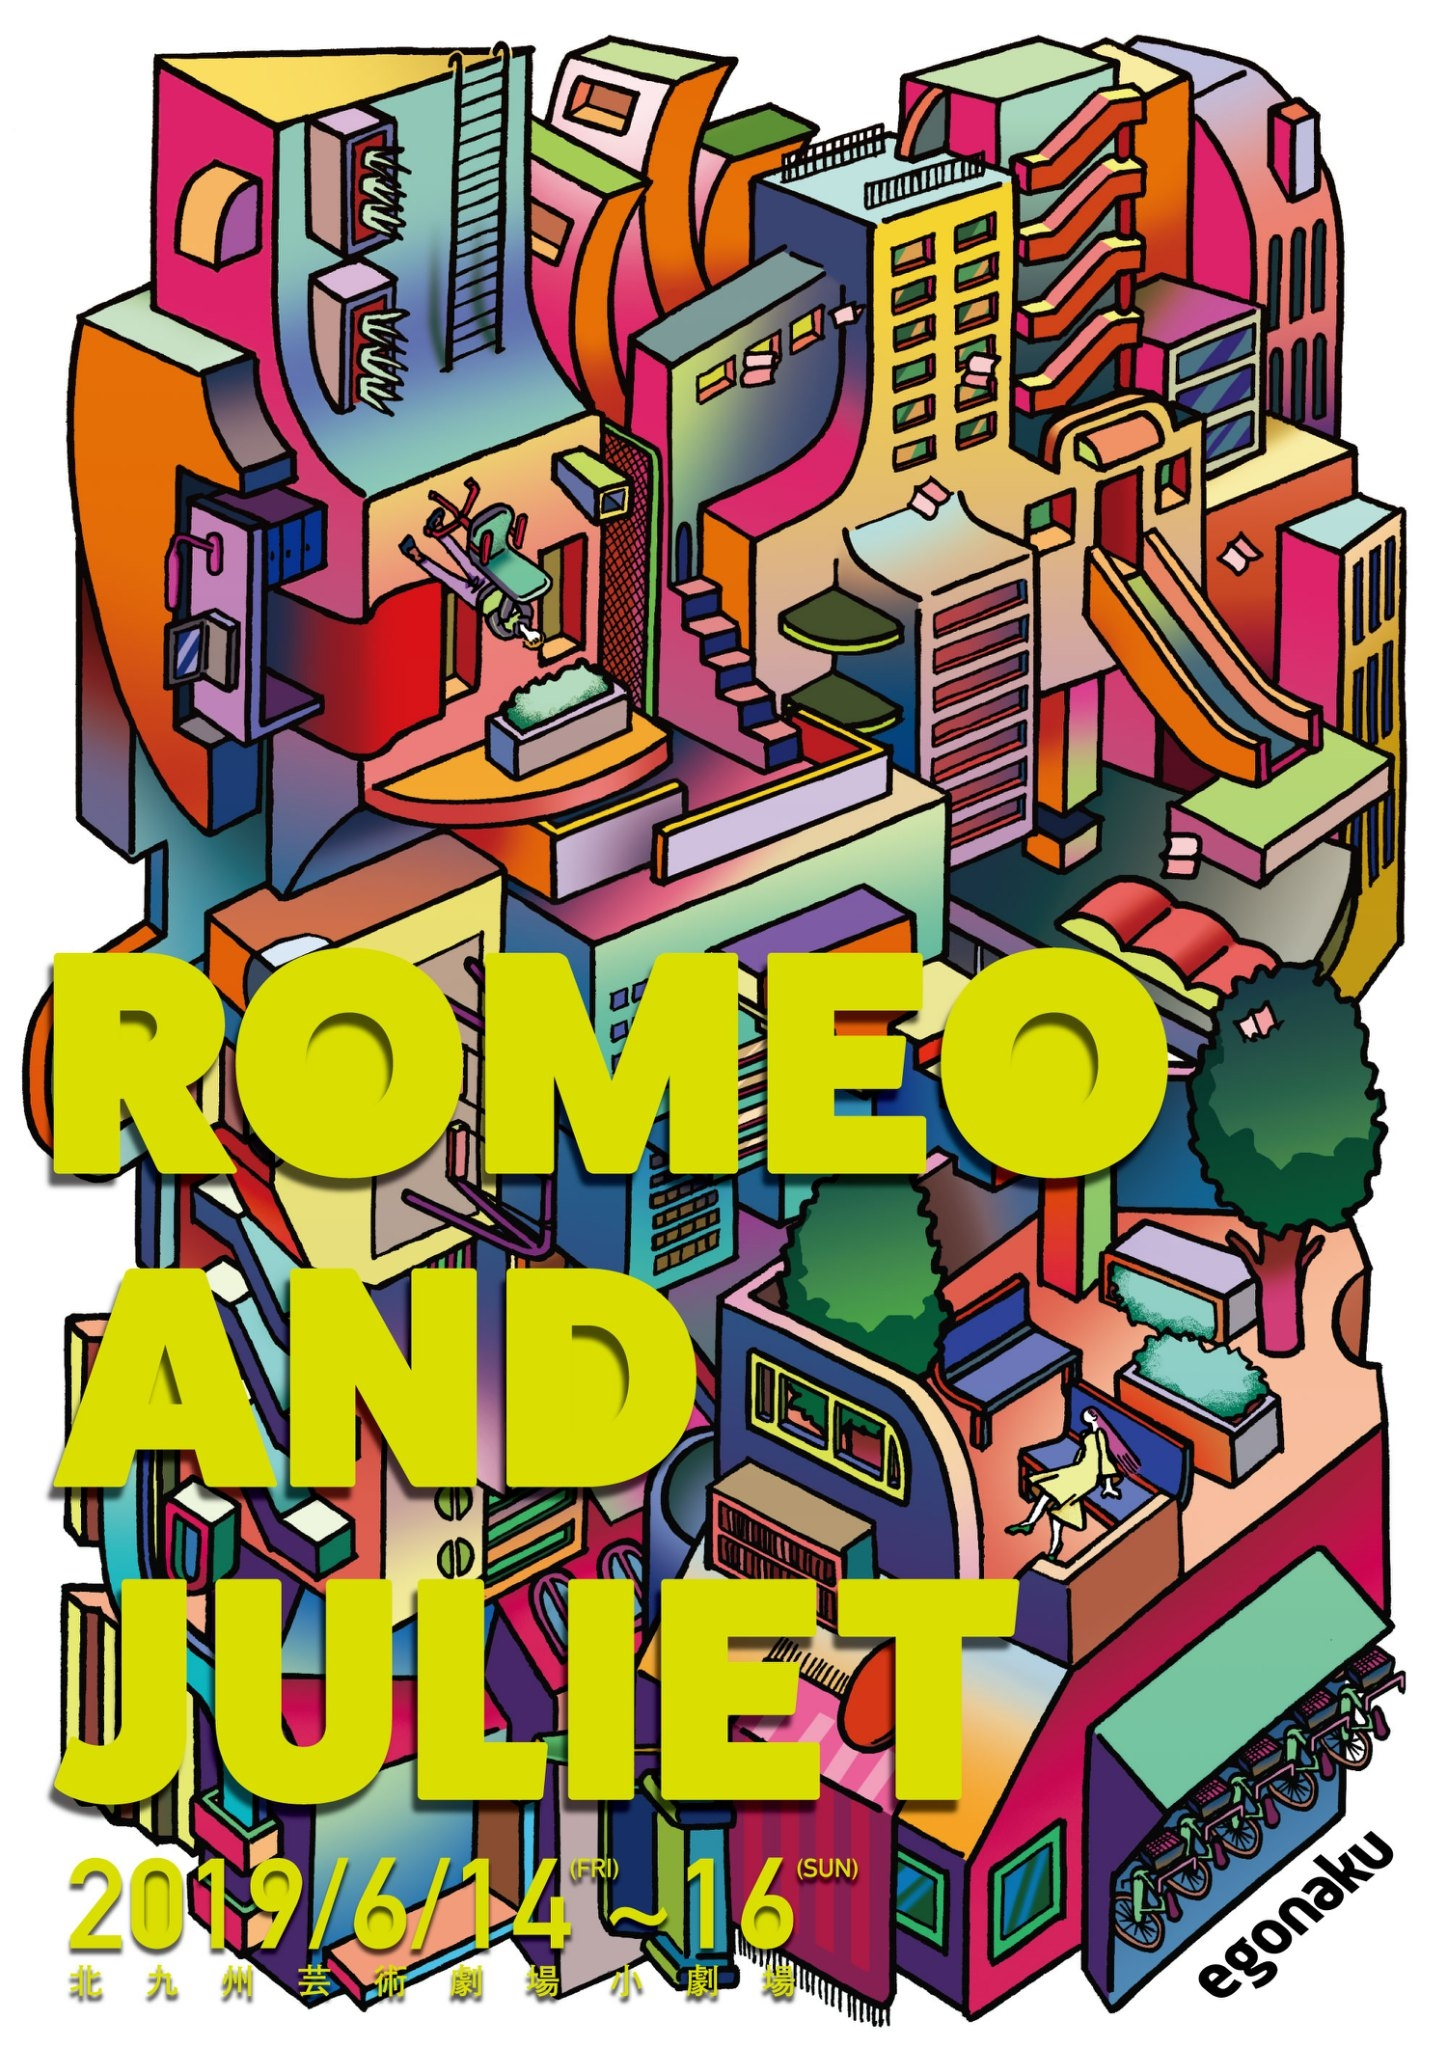 「ROMEO AND JULIET」